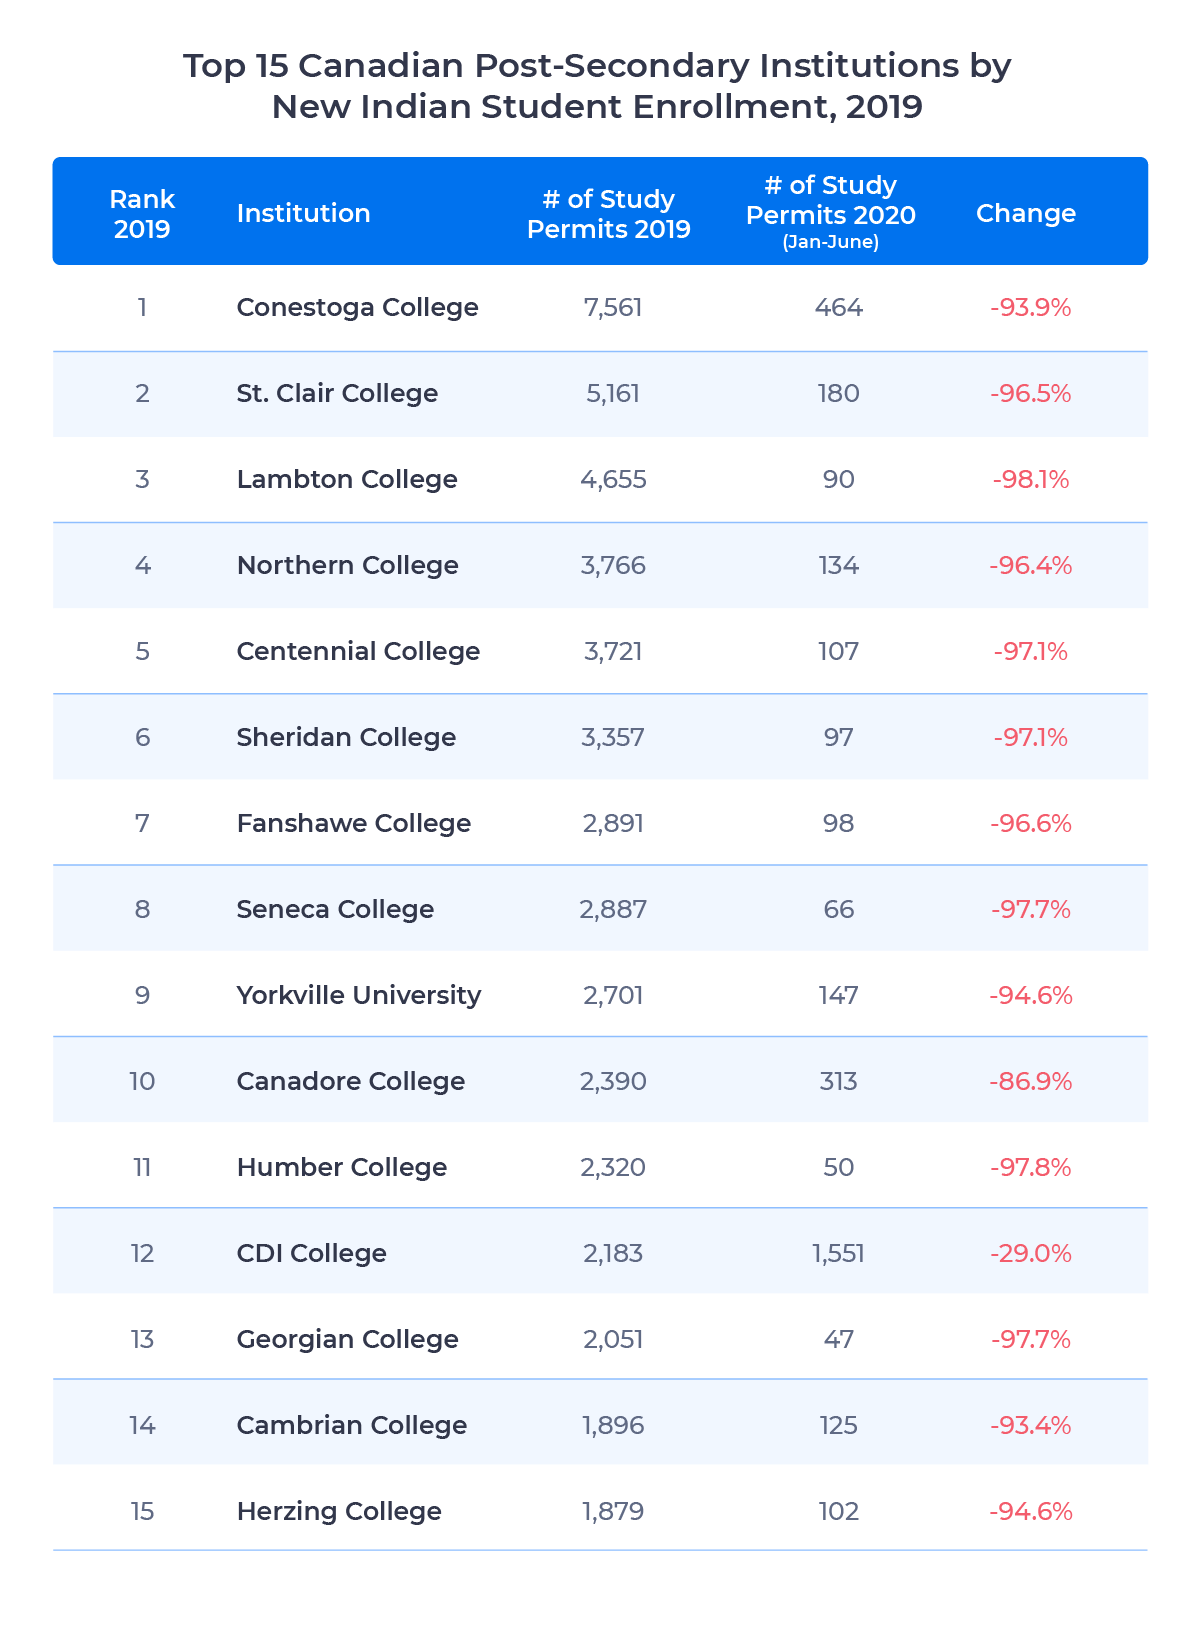 Table showing the number of new study permits issued to the top 15 post-secondary institutions for new Indian student enrollment in 2019 and the change in enrollment for 2020. Examined in detail below.